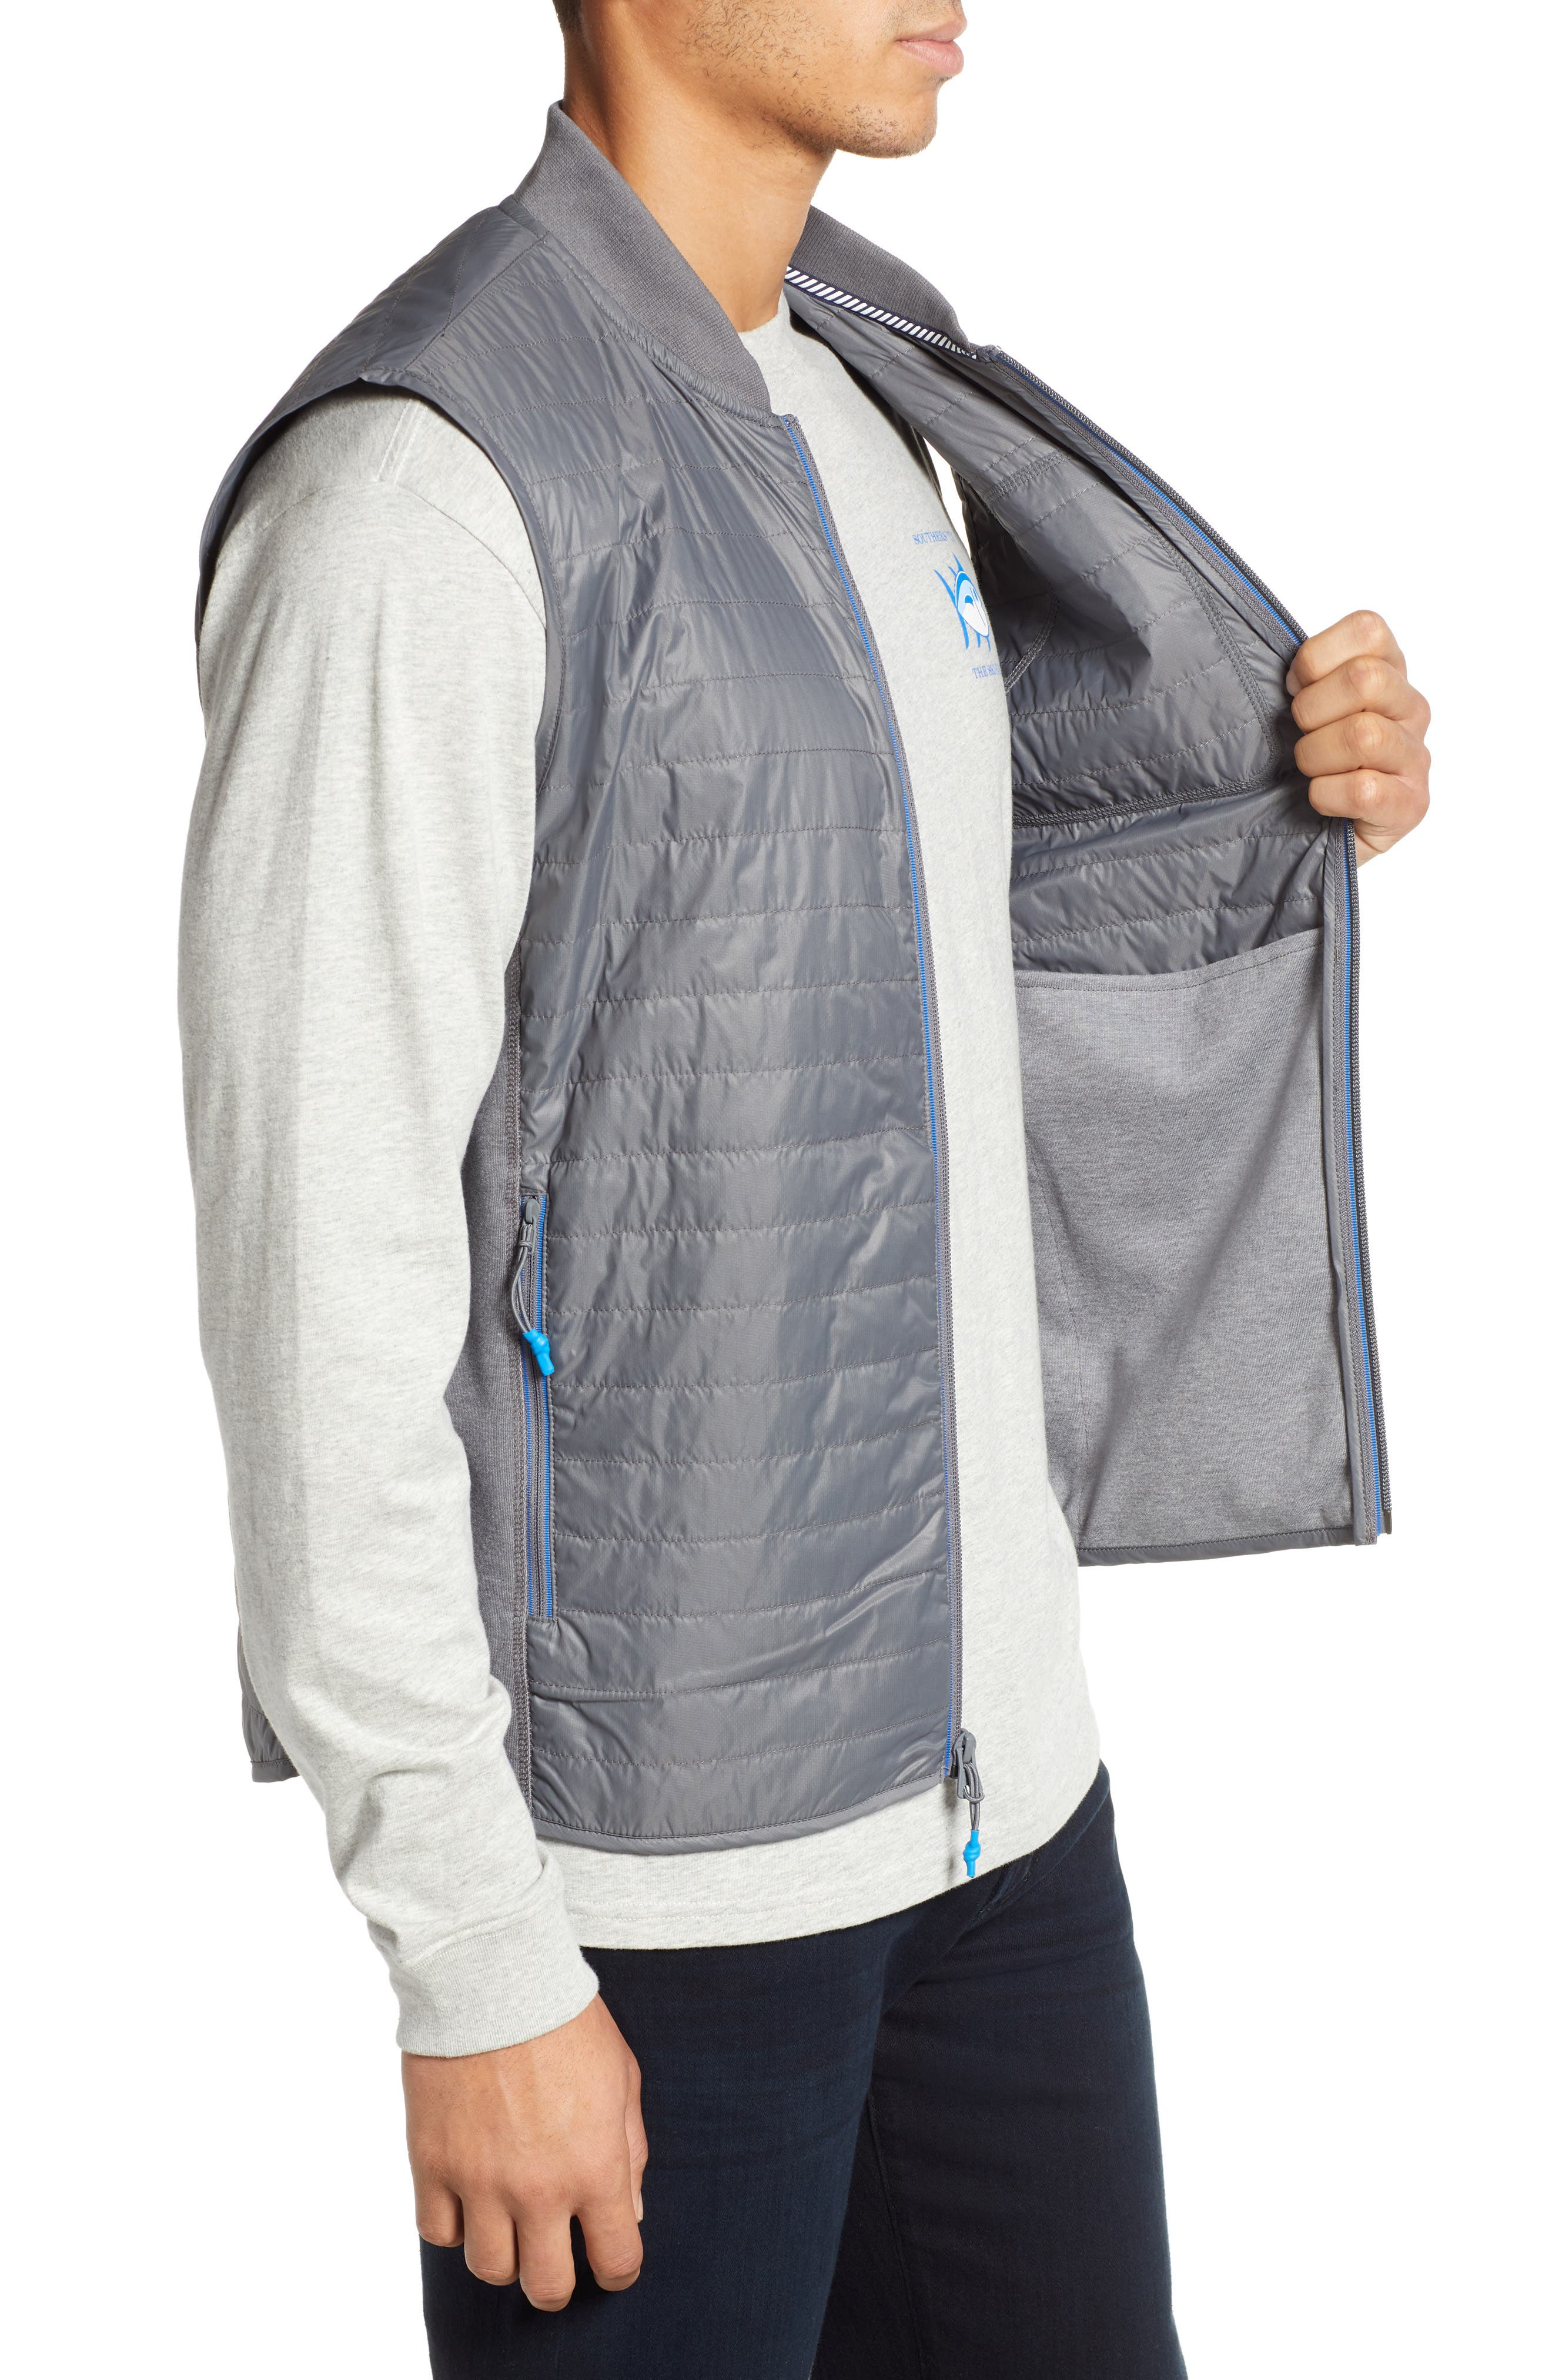 Forrest Creek Bomber Vest,                             Alternate thumbnail 3, color,                             SMOKED PEARL